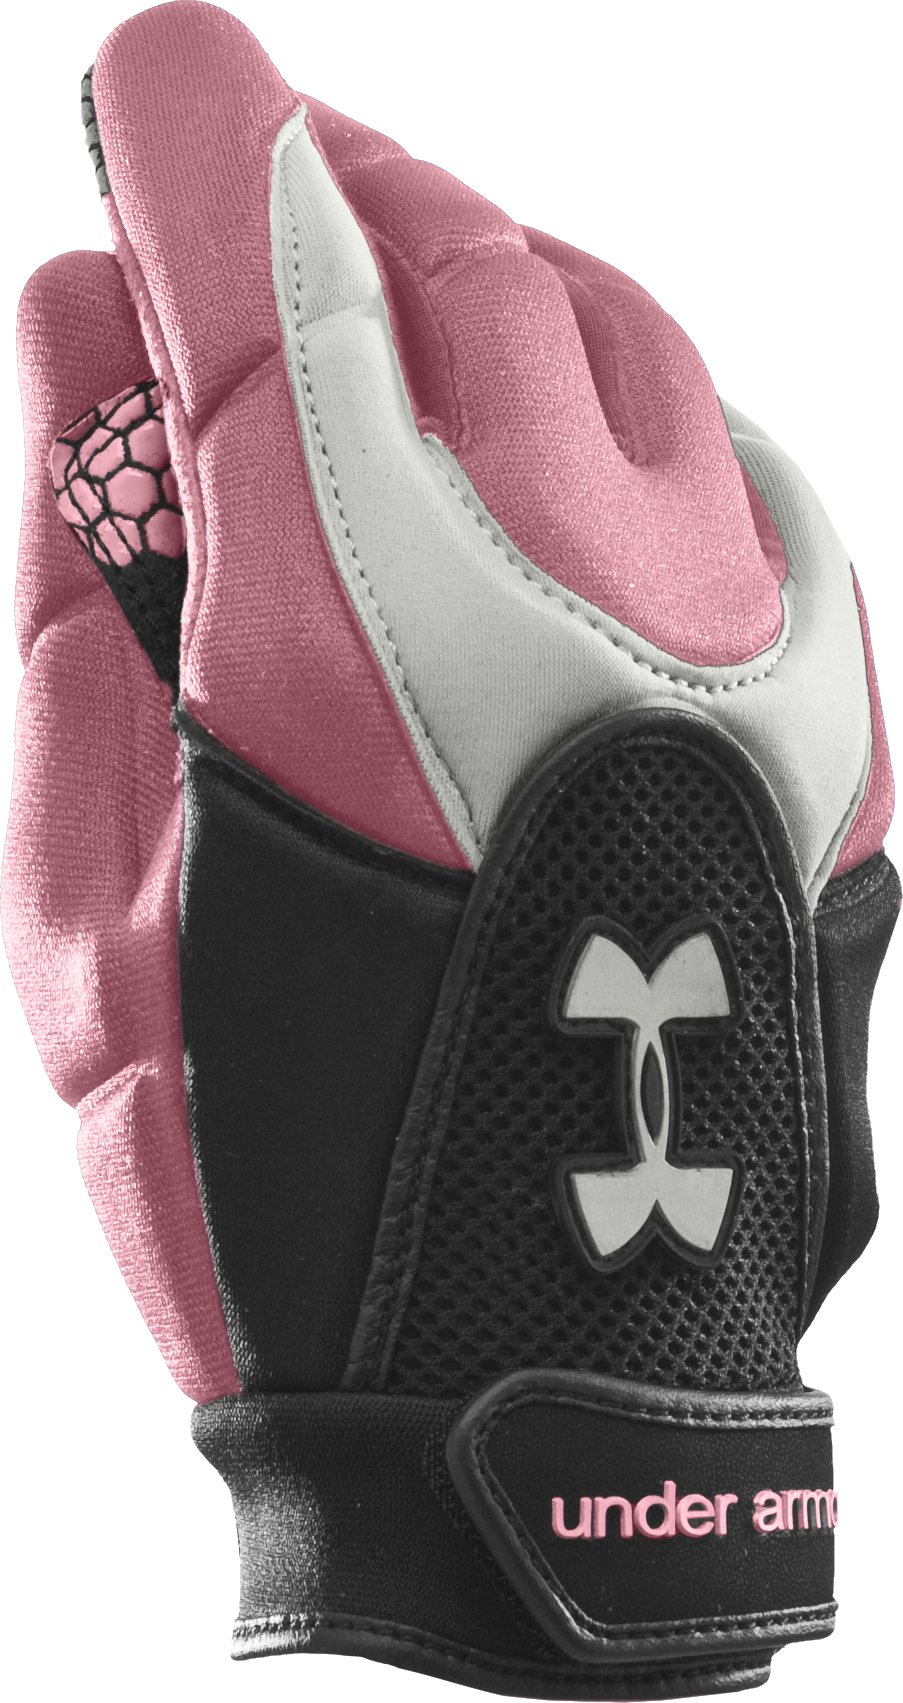 Women's Lax Glove, Pink